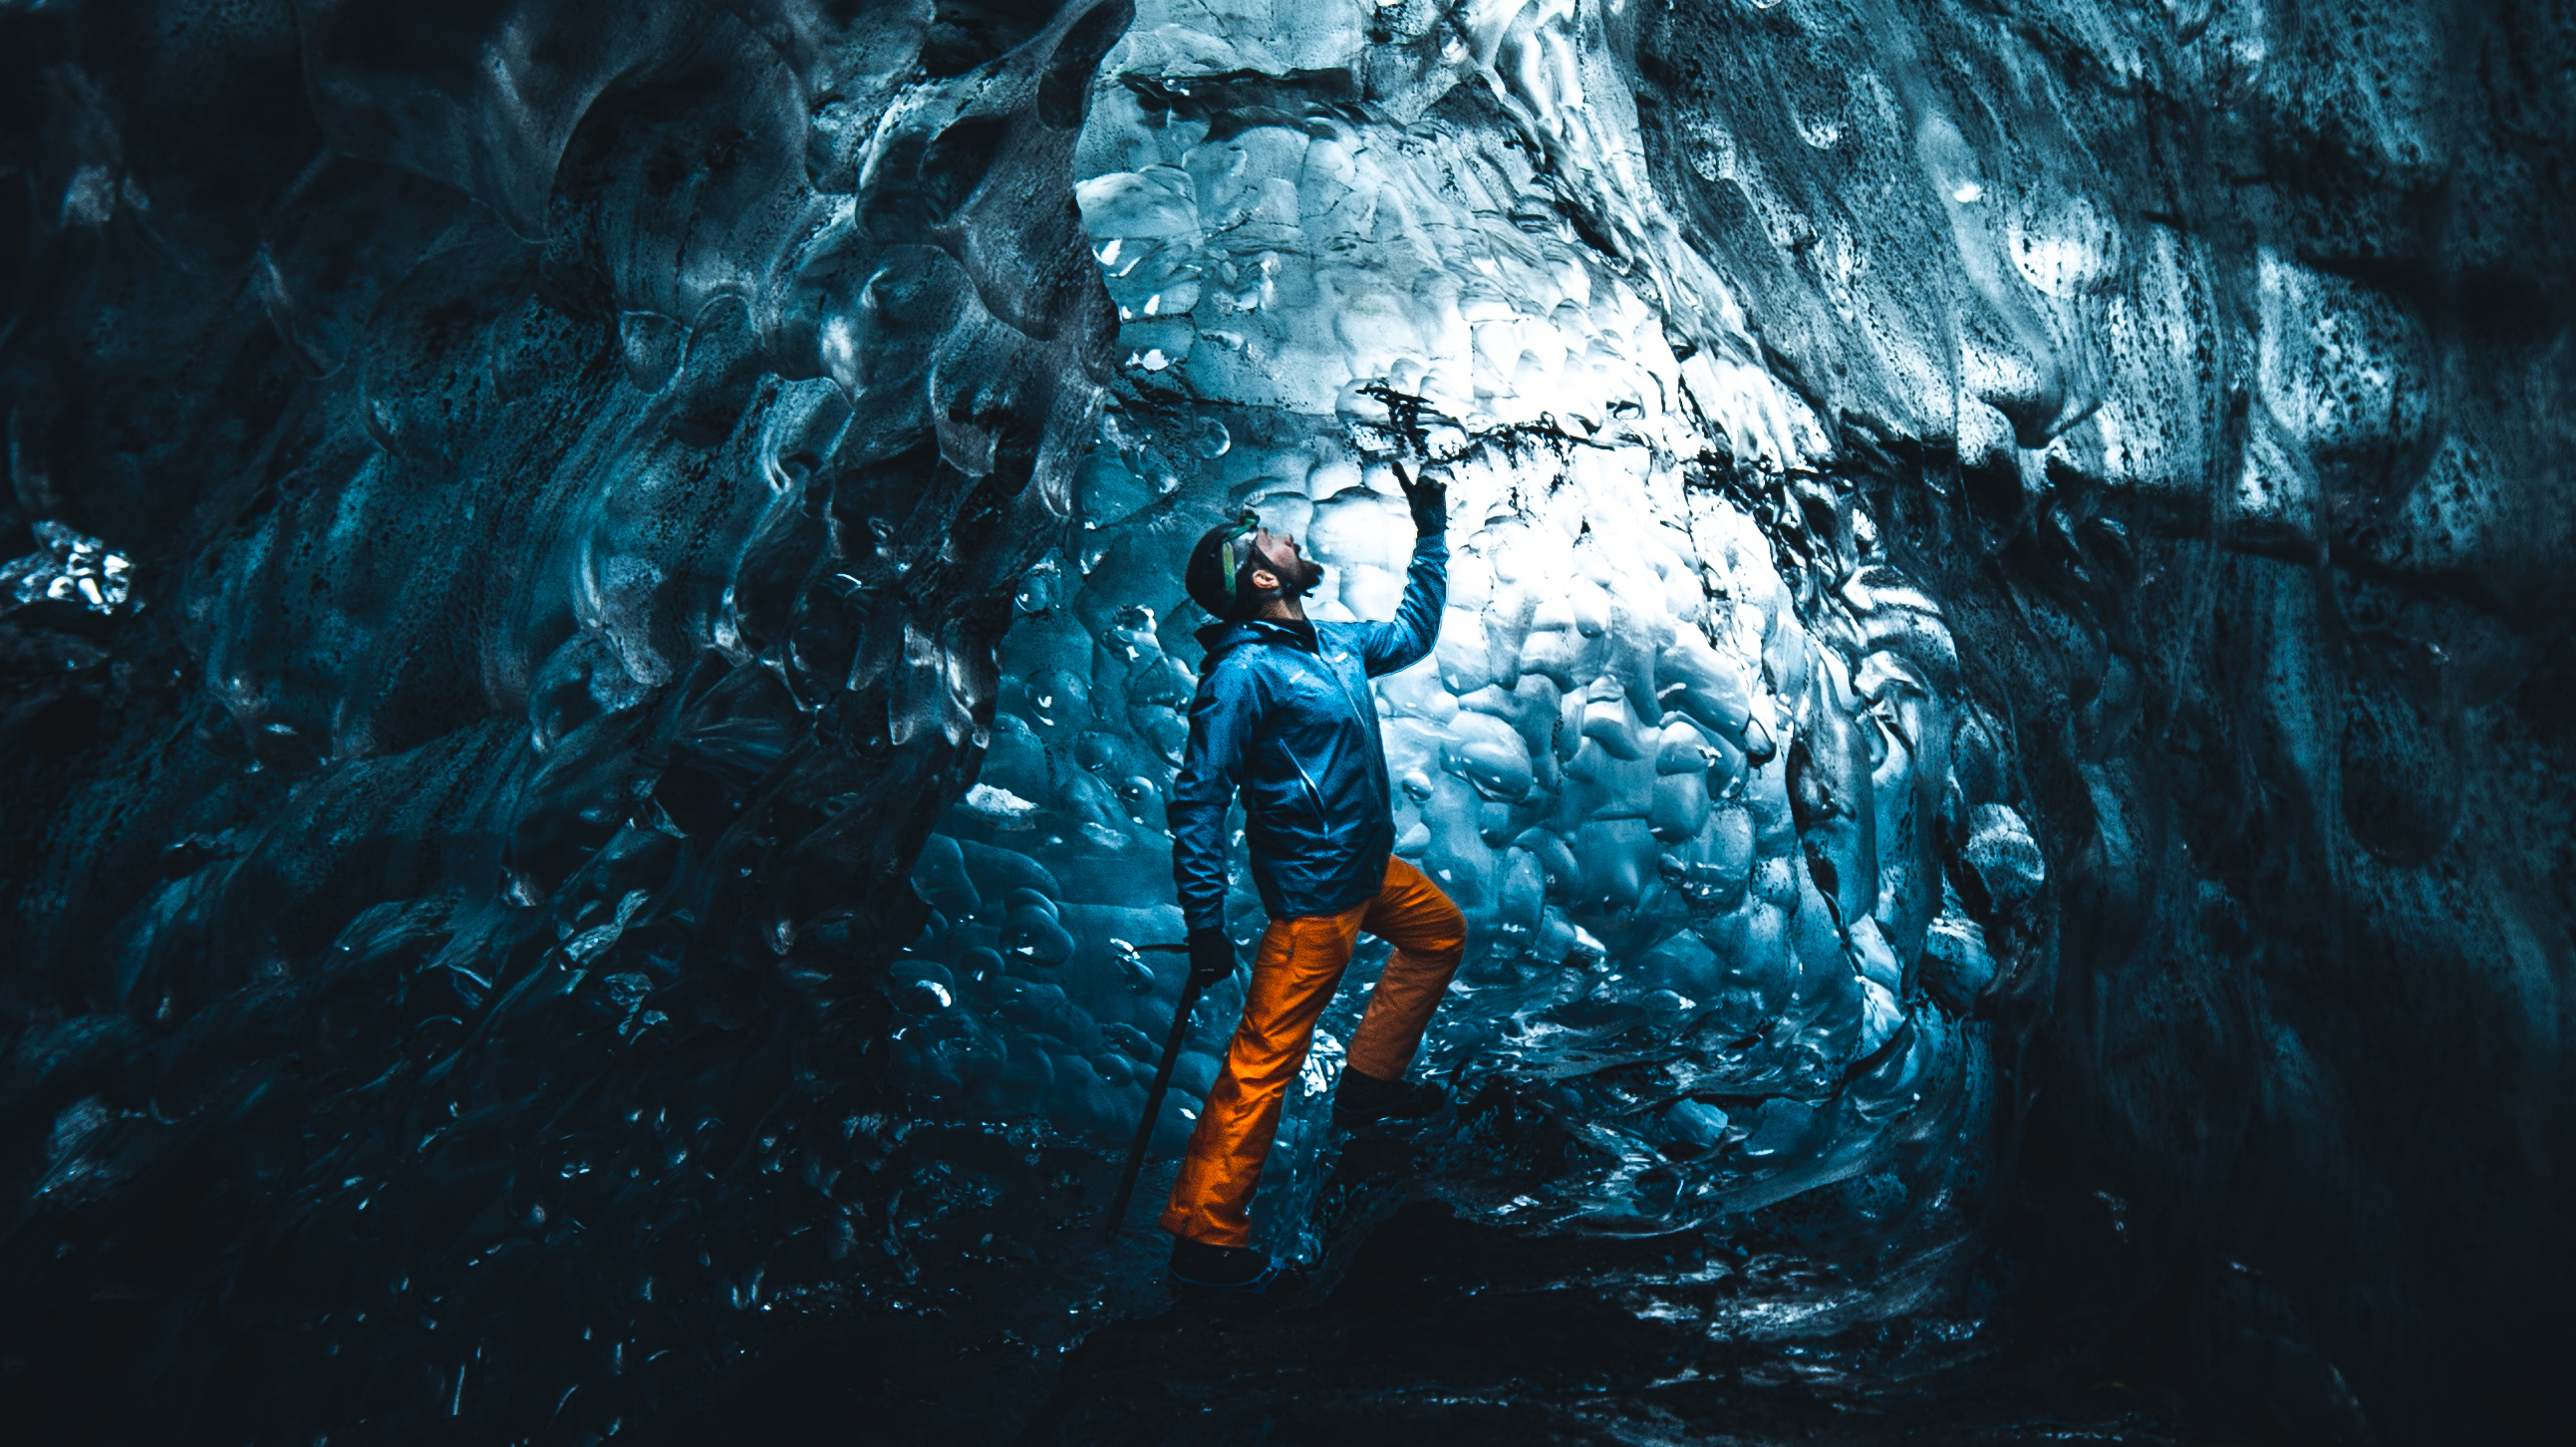 3 in 1 Bundled Discount Activity Tours with 2 Glacier Hikes & a Blue Ice Cave in Vatnajokull - day 3